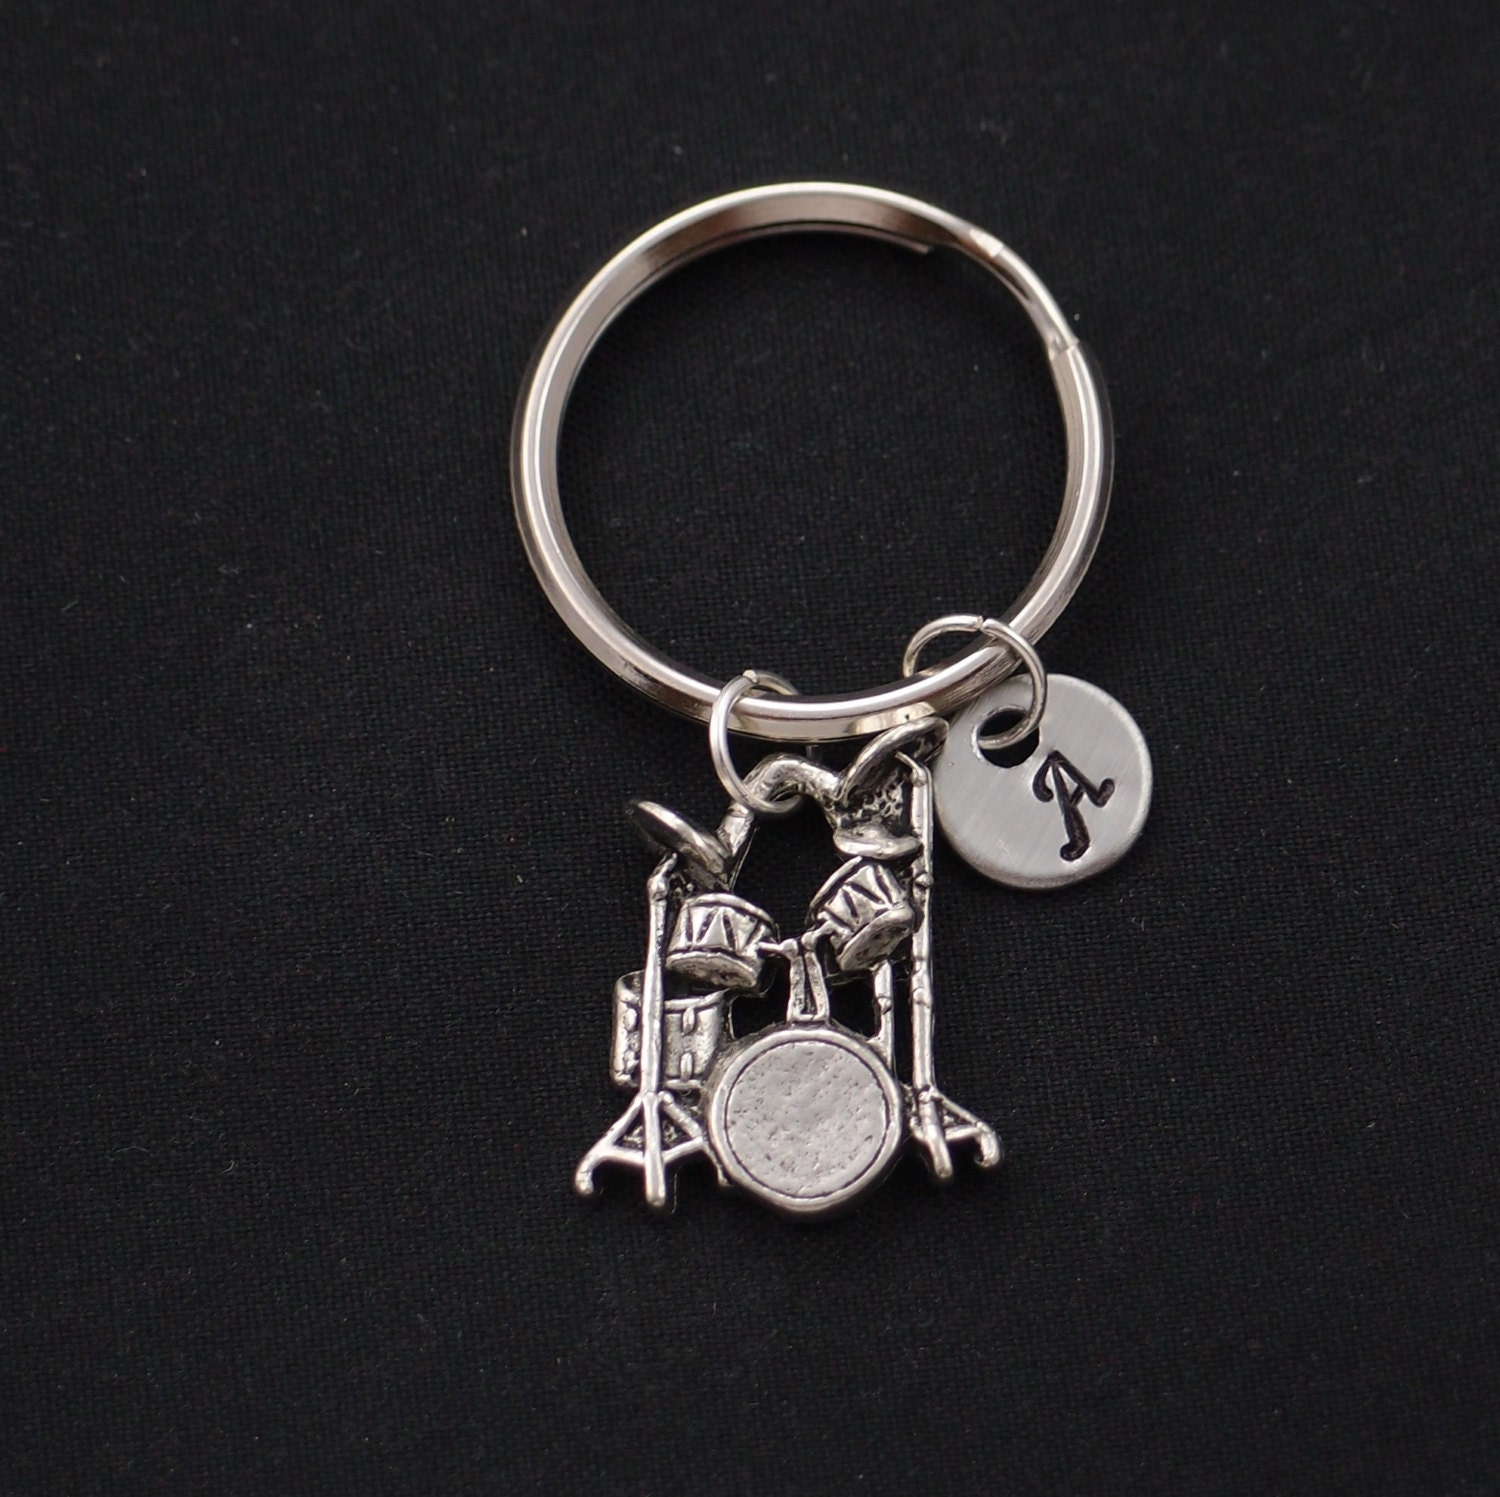 drum keychain initial keychain silver drum set charm. Black Bedroom Furniture Sets. Home Design Ideas